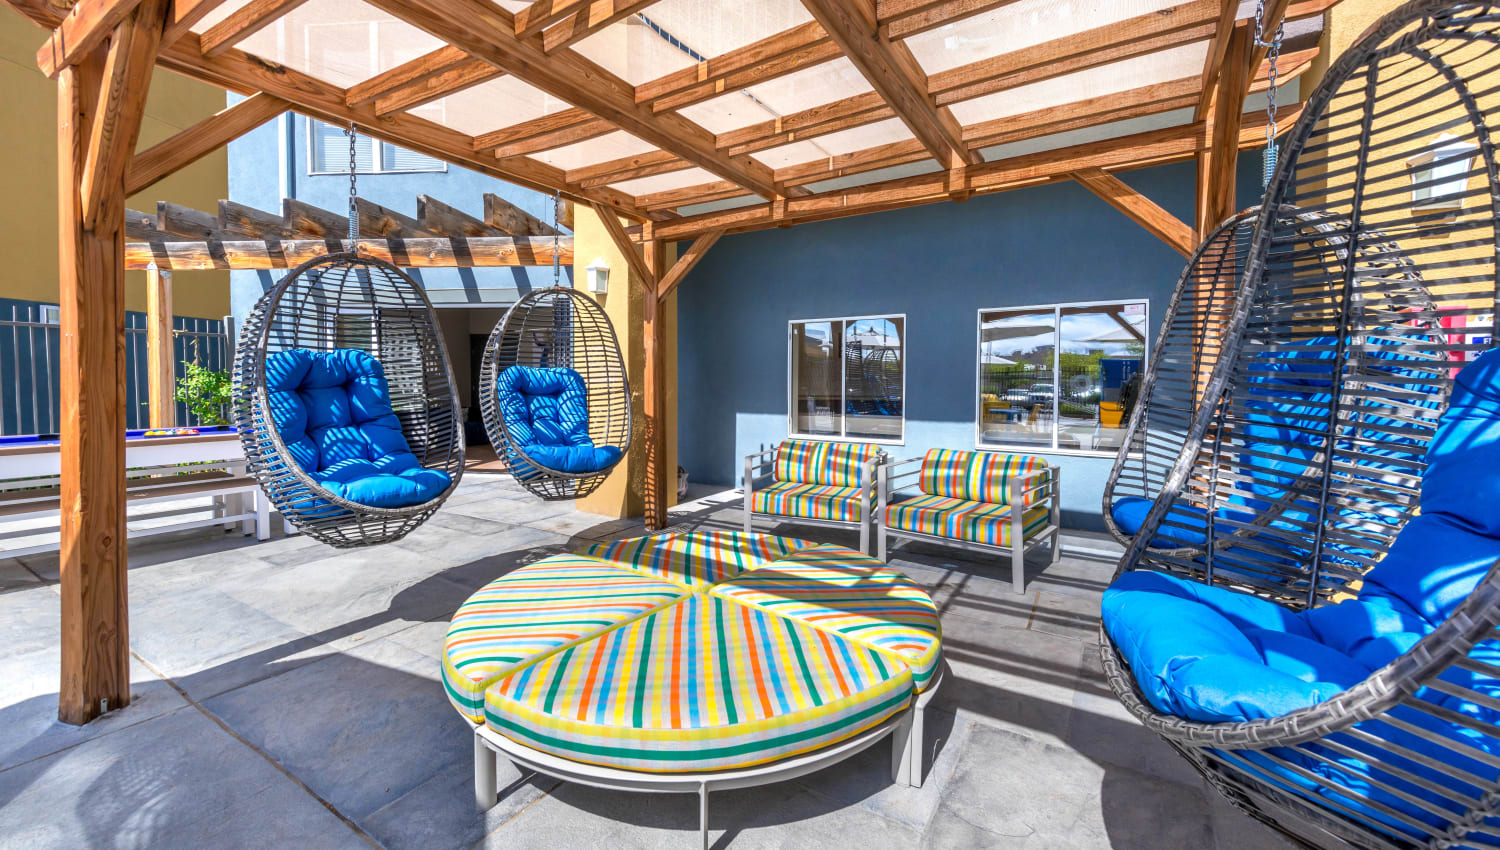 Outdoor lounge area with hanging basket chairs at Olympus Solaire in Albuquerque, New Mexico